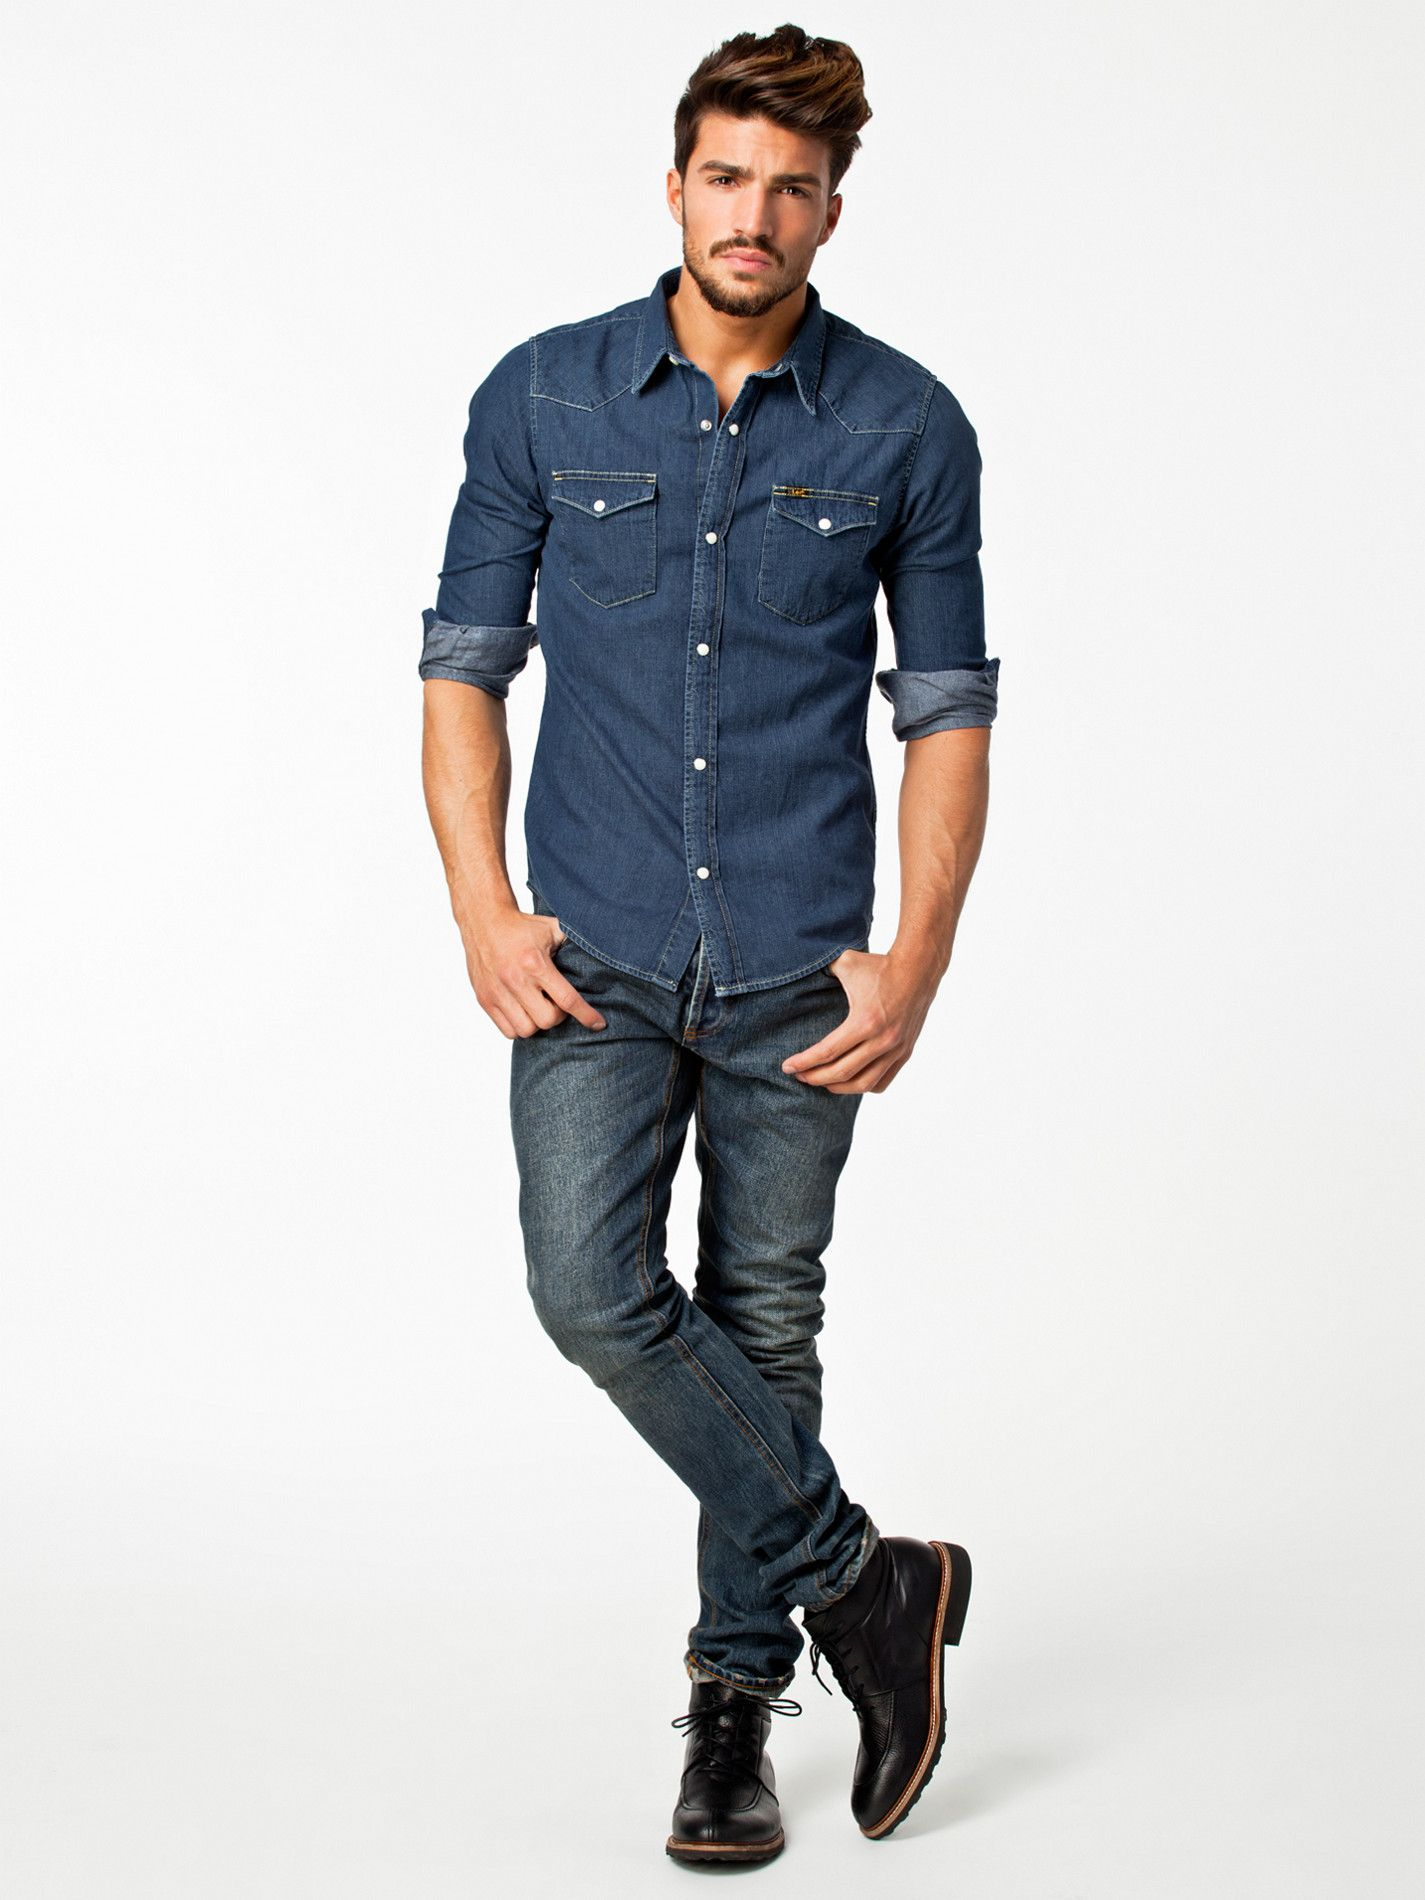 e7d4505fab6 Western Shirt - Lee Jeans - Stone - Shirts (Men) - Clothing - Men -  Nelly.com